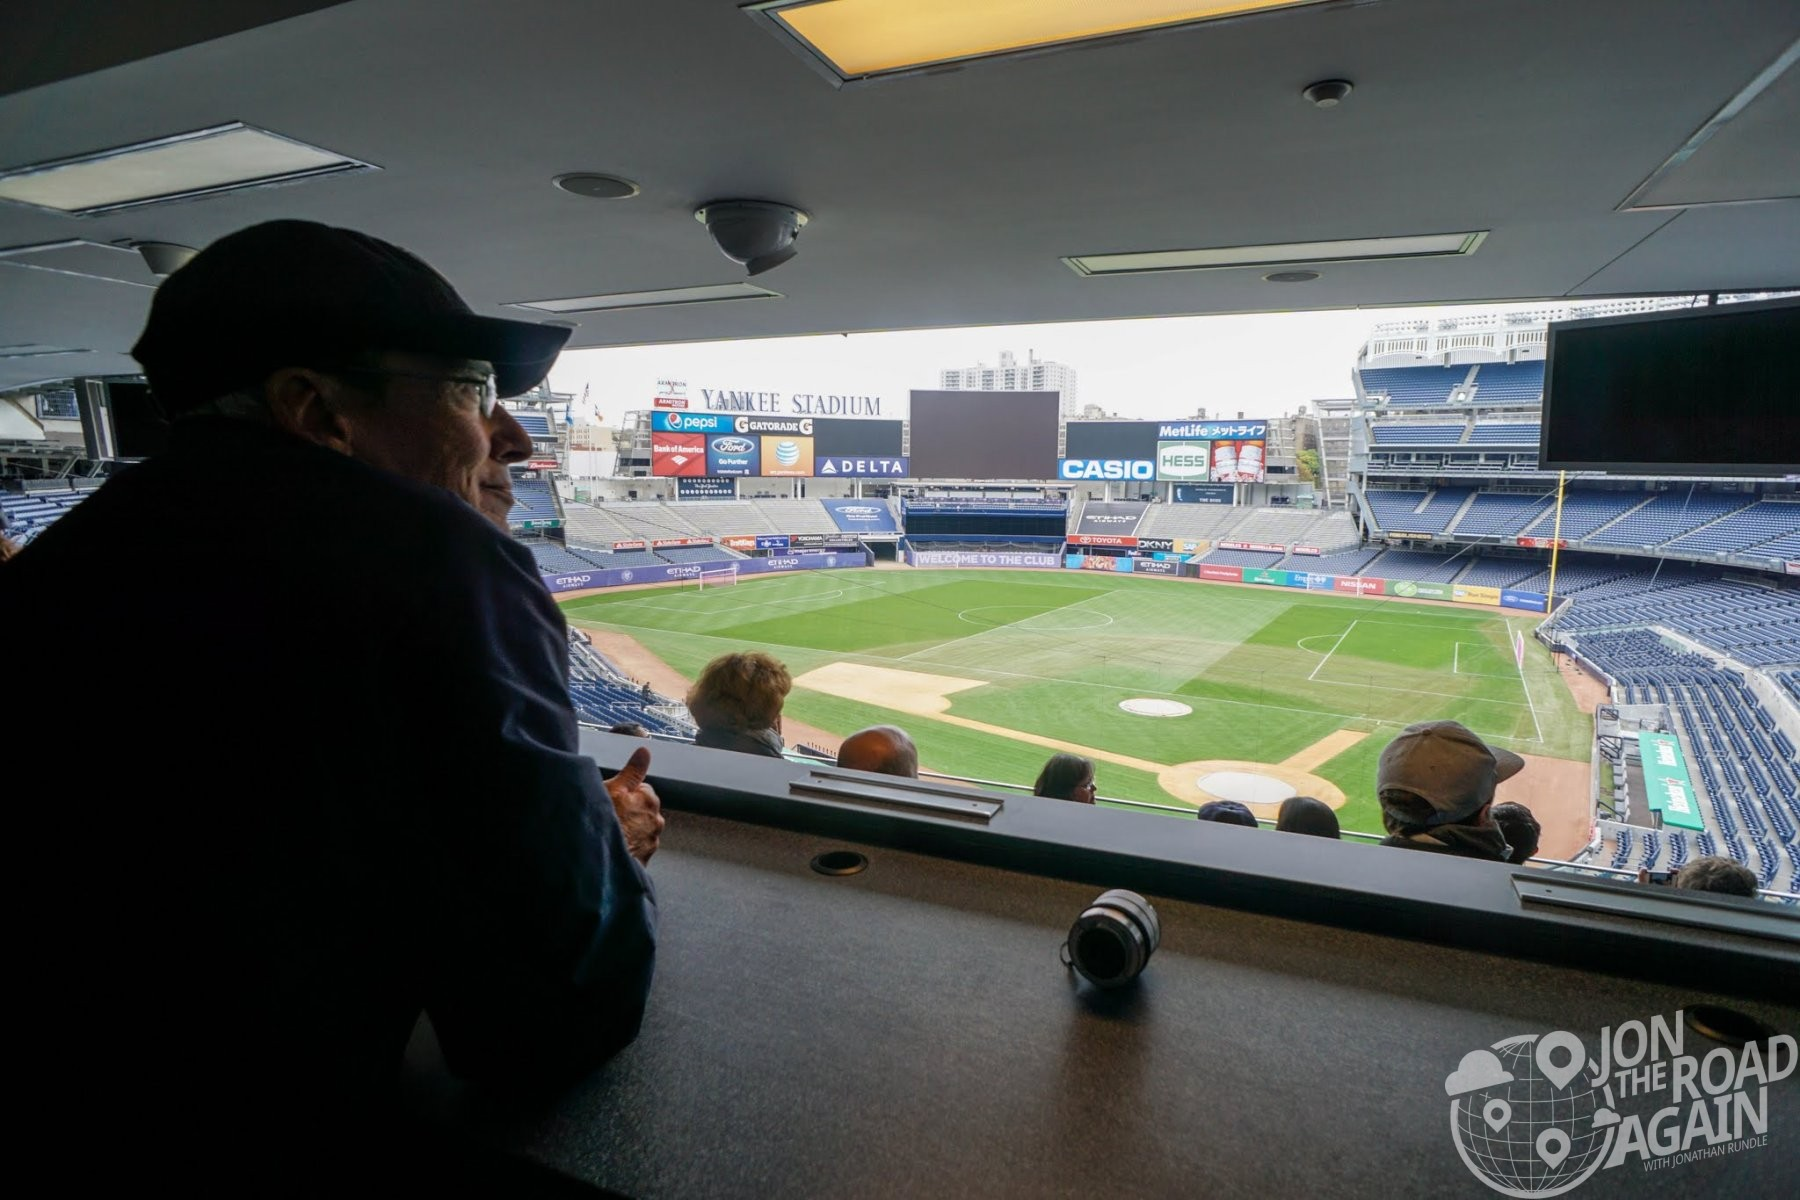 View from the Press Box at Yankee Stadium